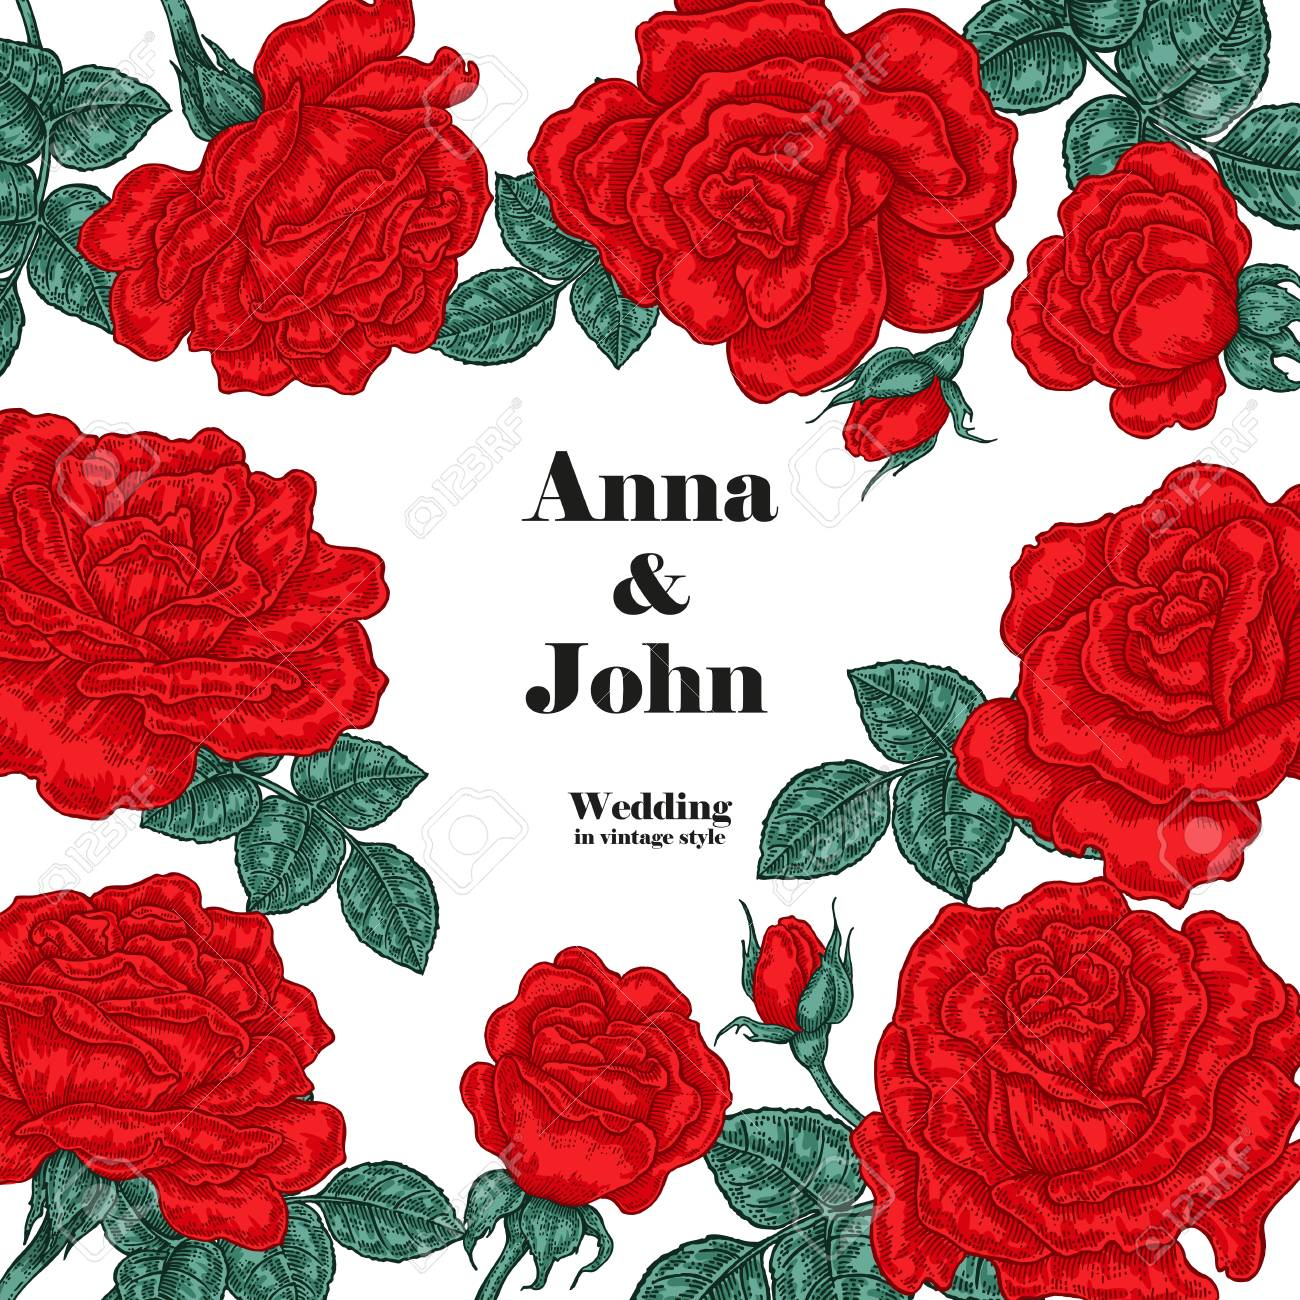 Floral Wedding Invitation Card. Vector Sketch. Red Roses On White ...